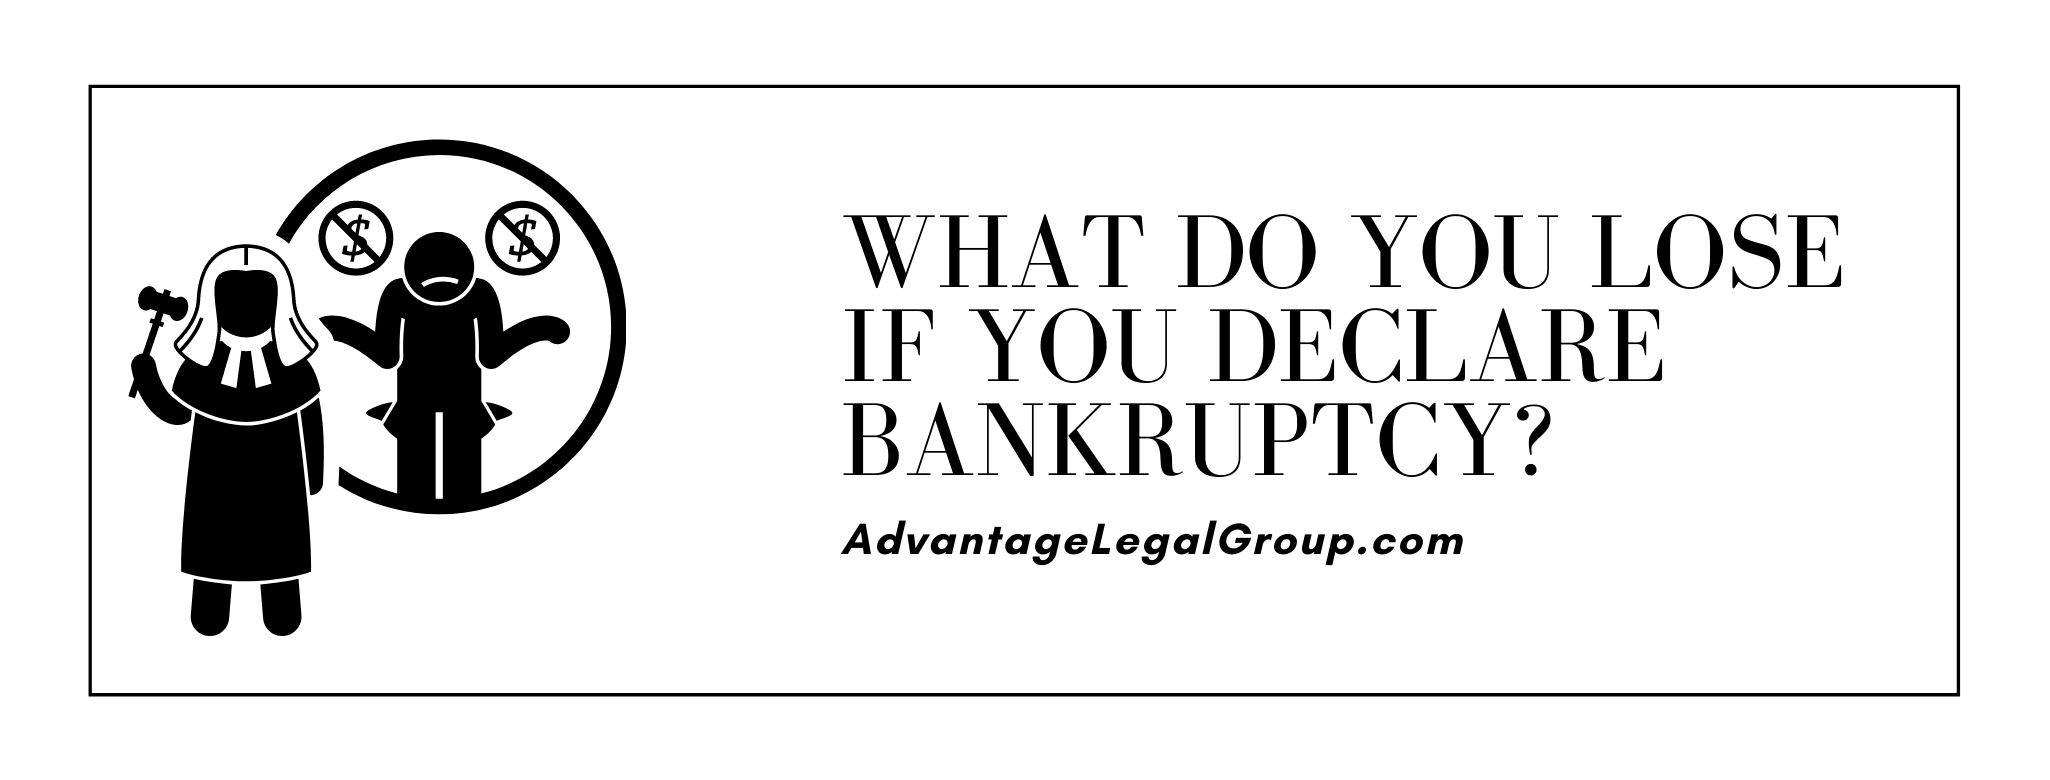 What Do You Lose If You Declare Bankruptcy?